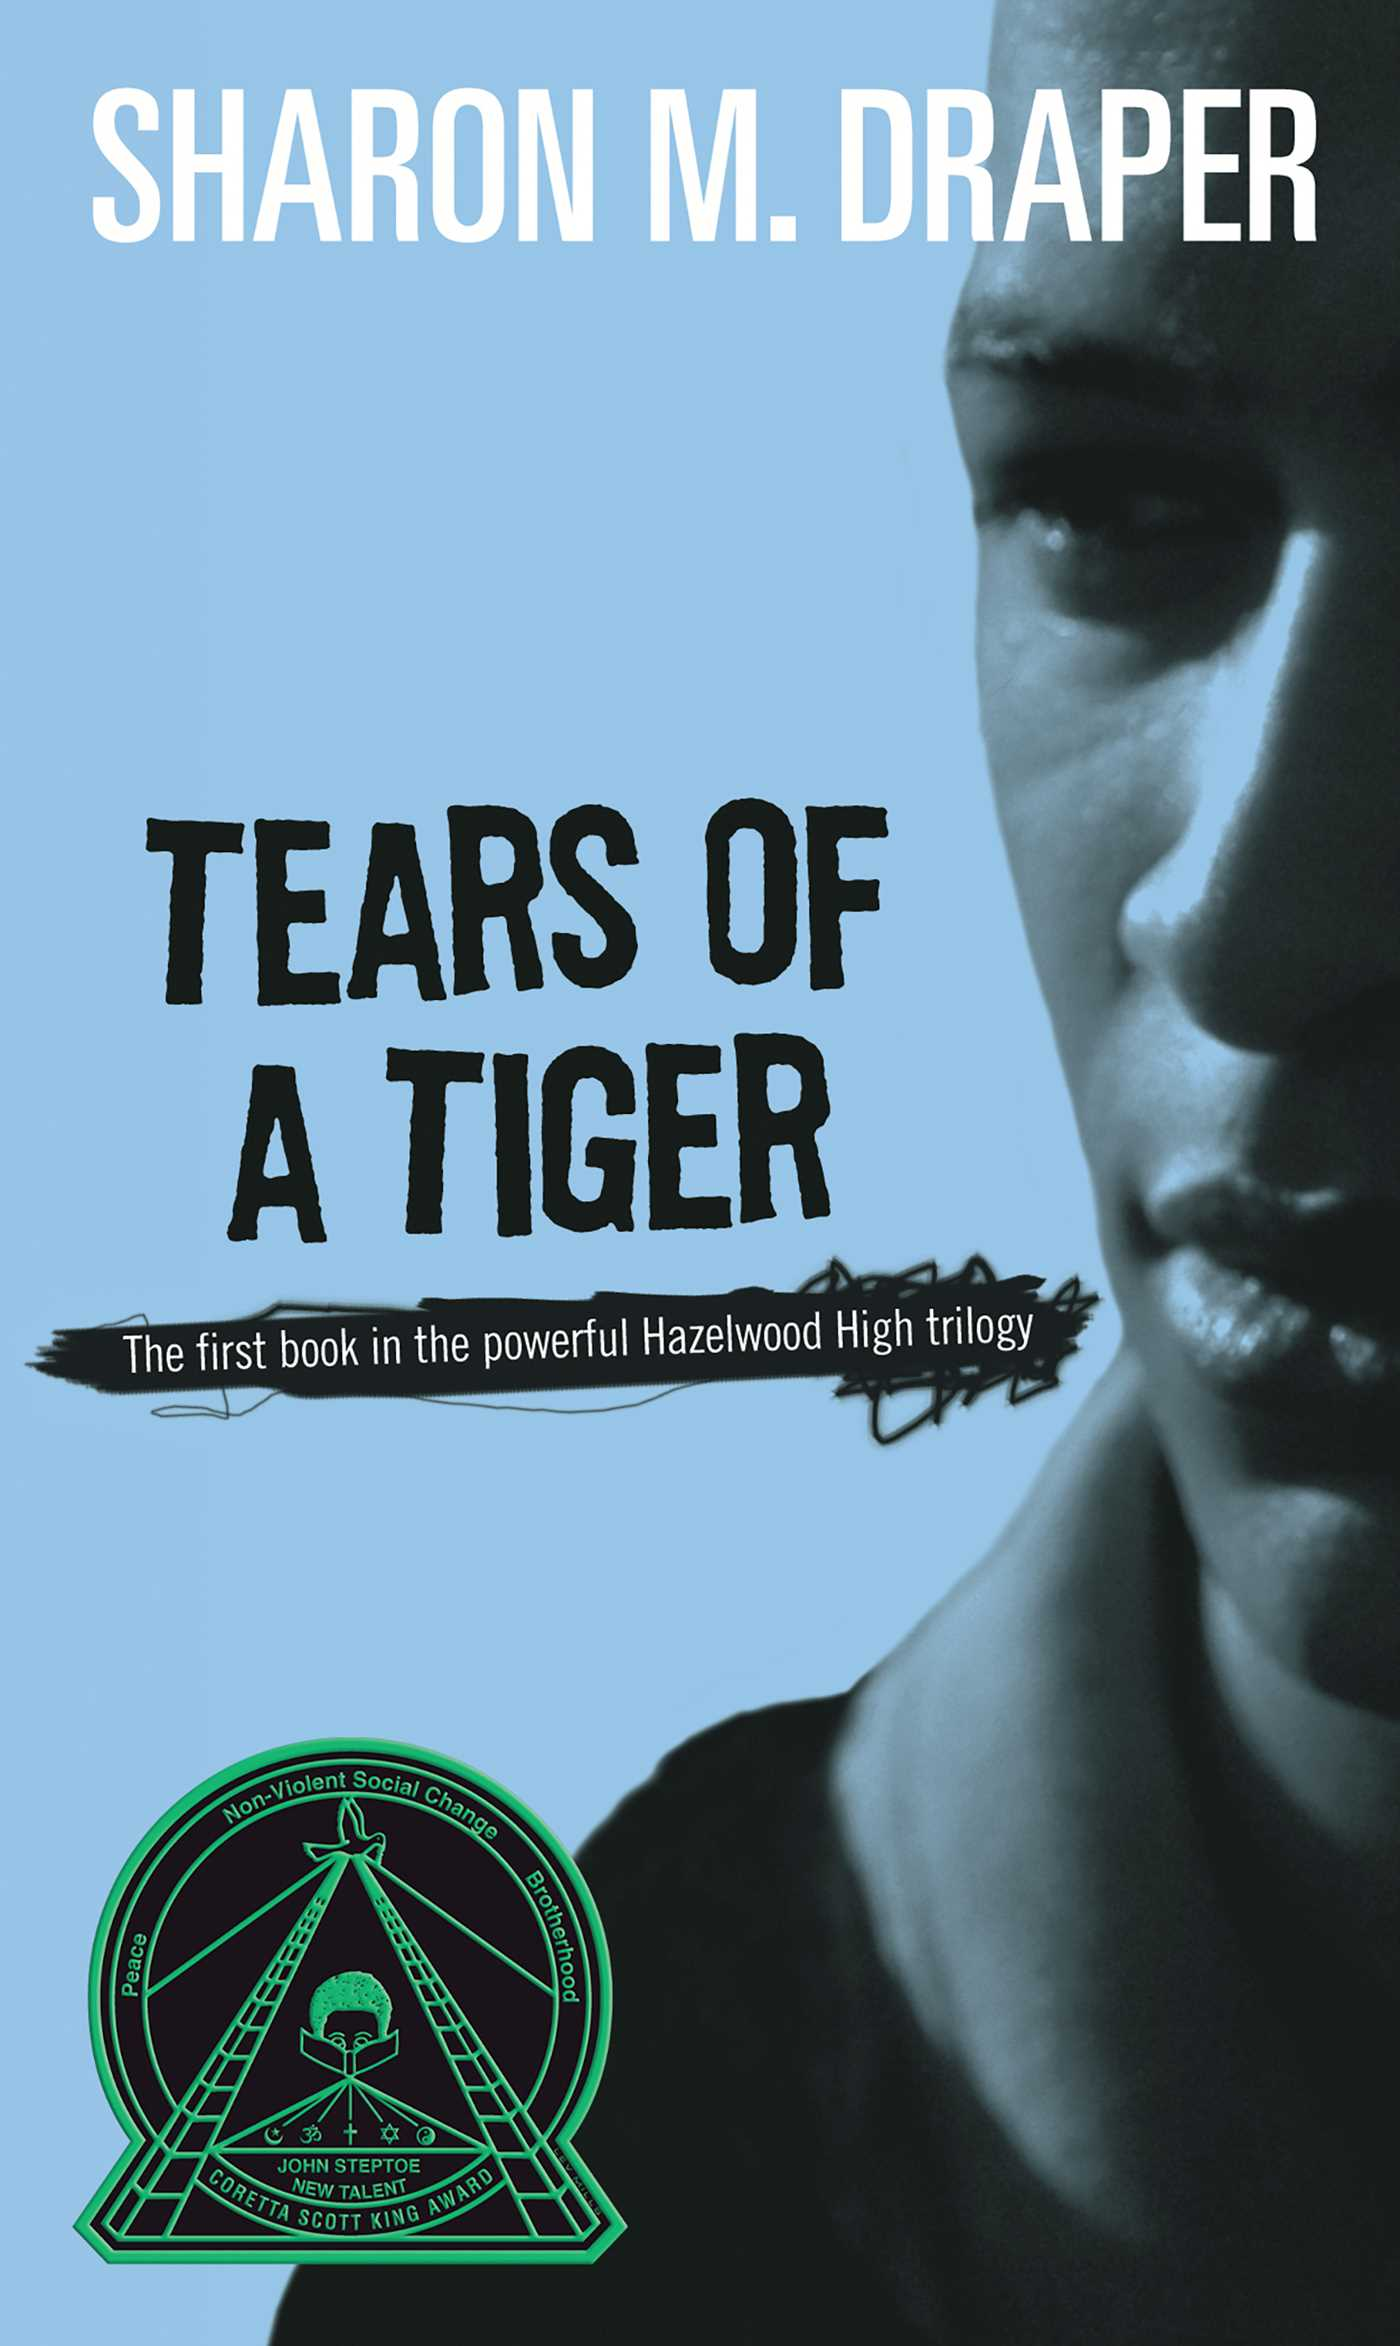 Tears of a tiger 9781416928317 hr